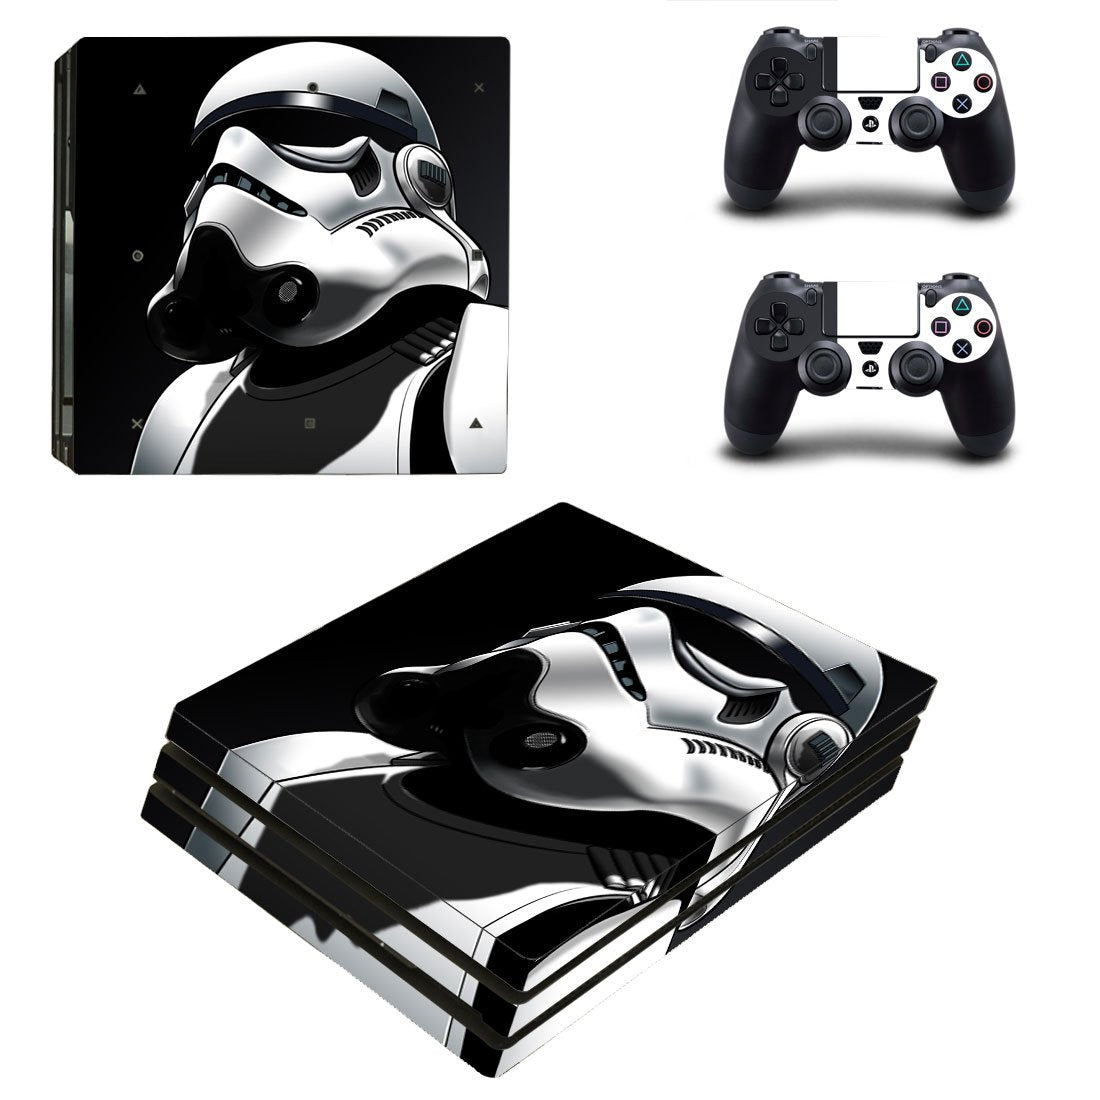 Star Wars PS4 Pro Skin Sticker Wrap